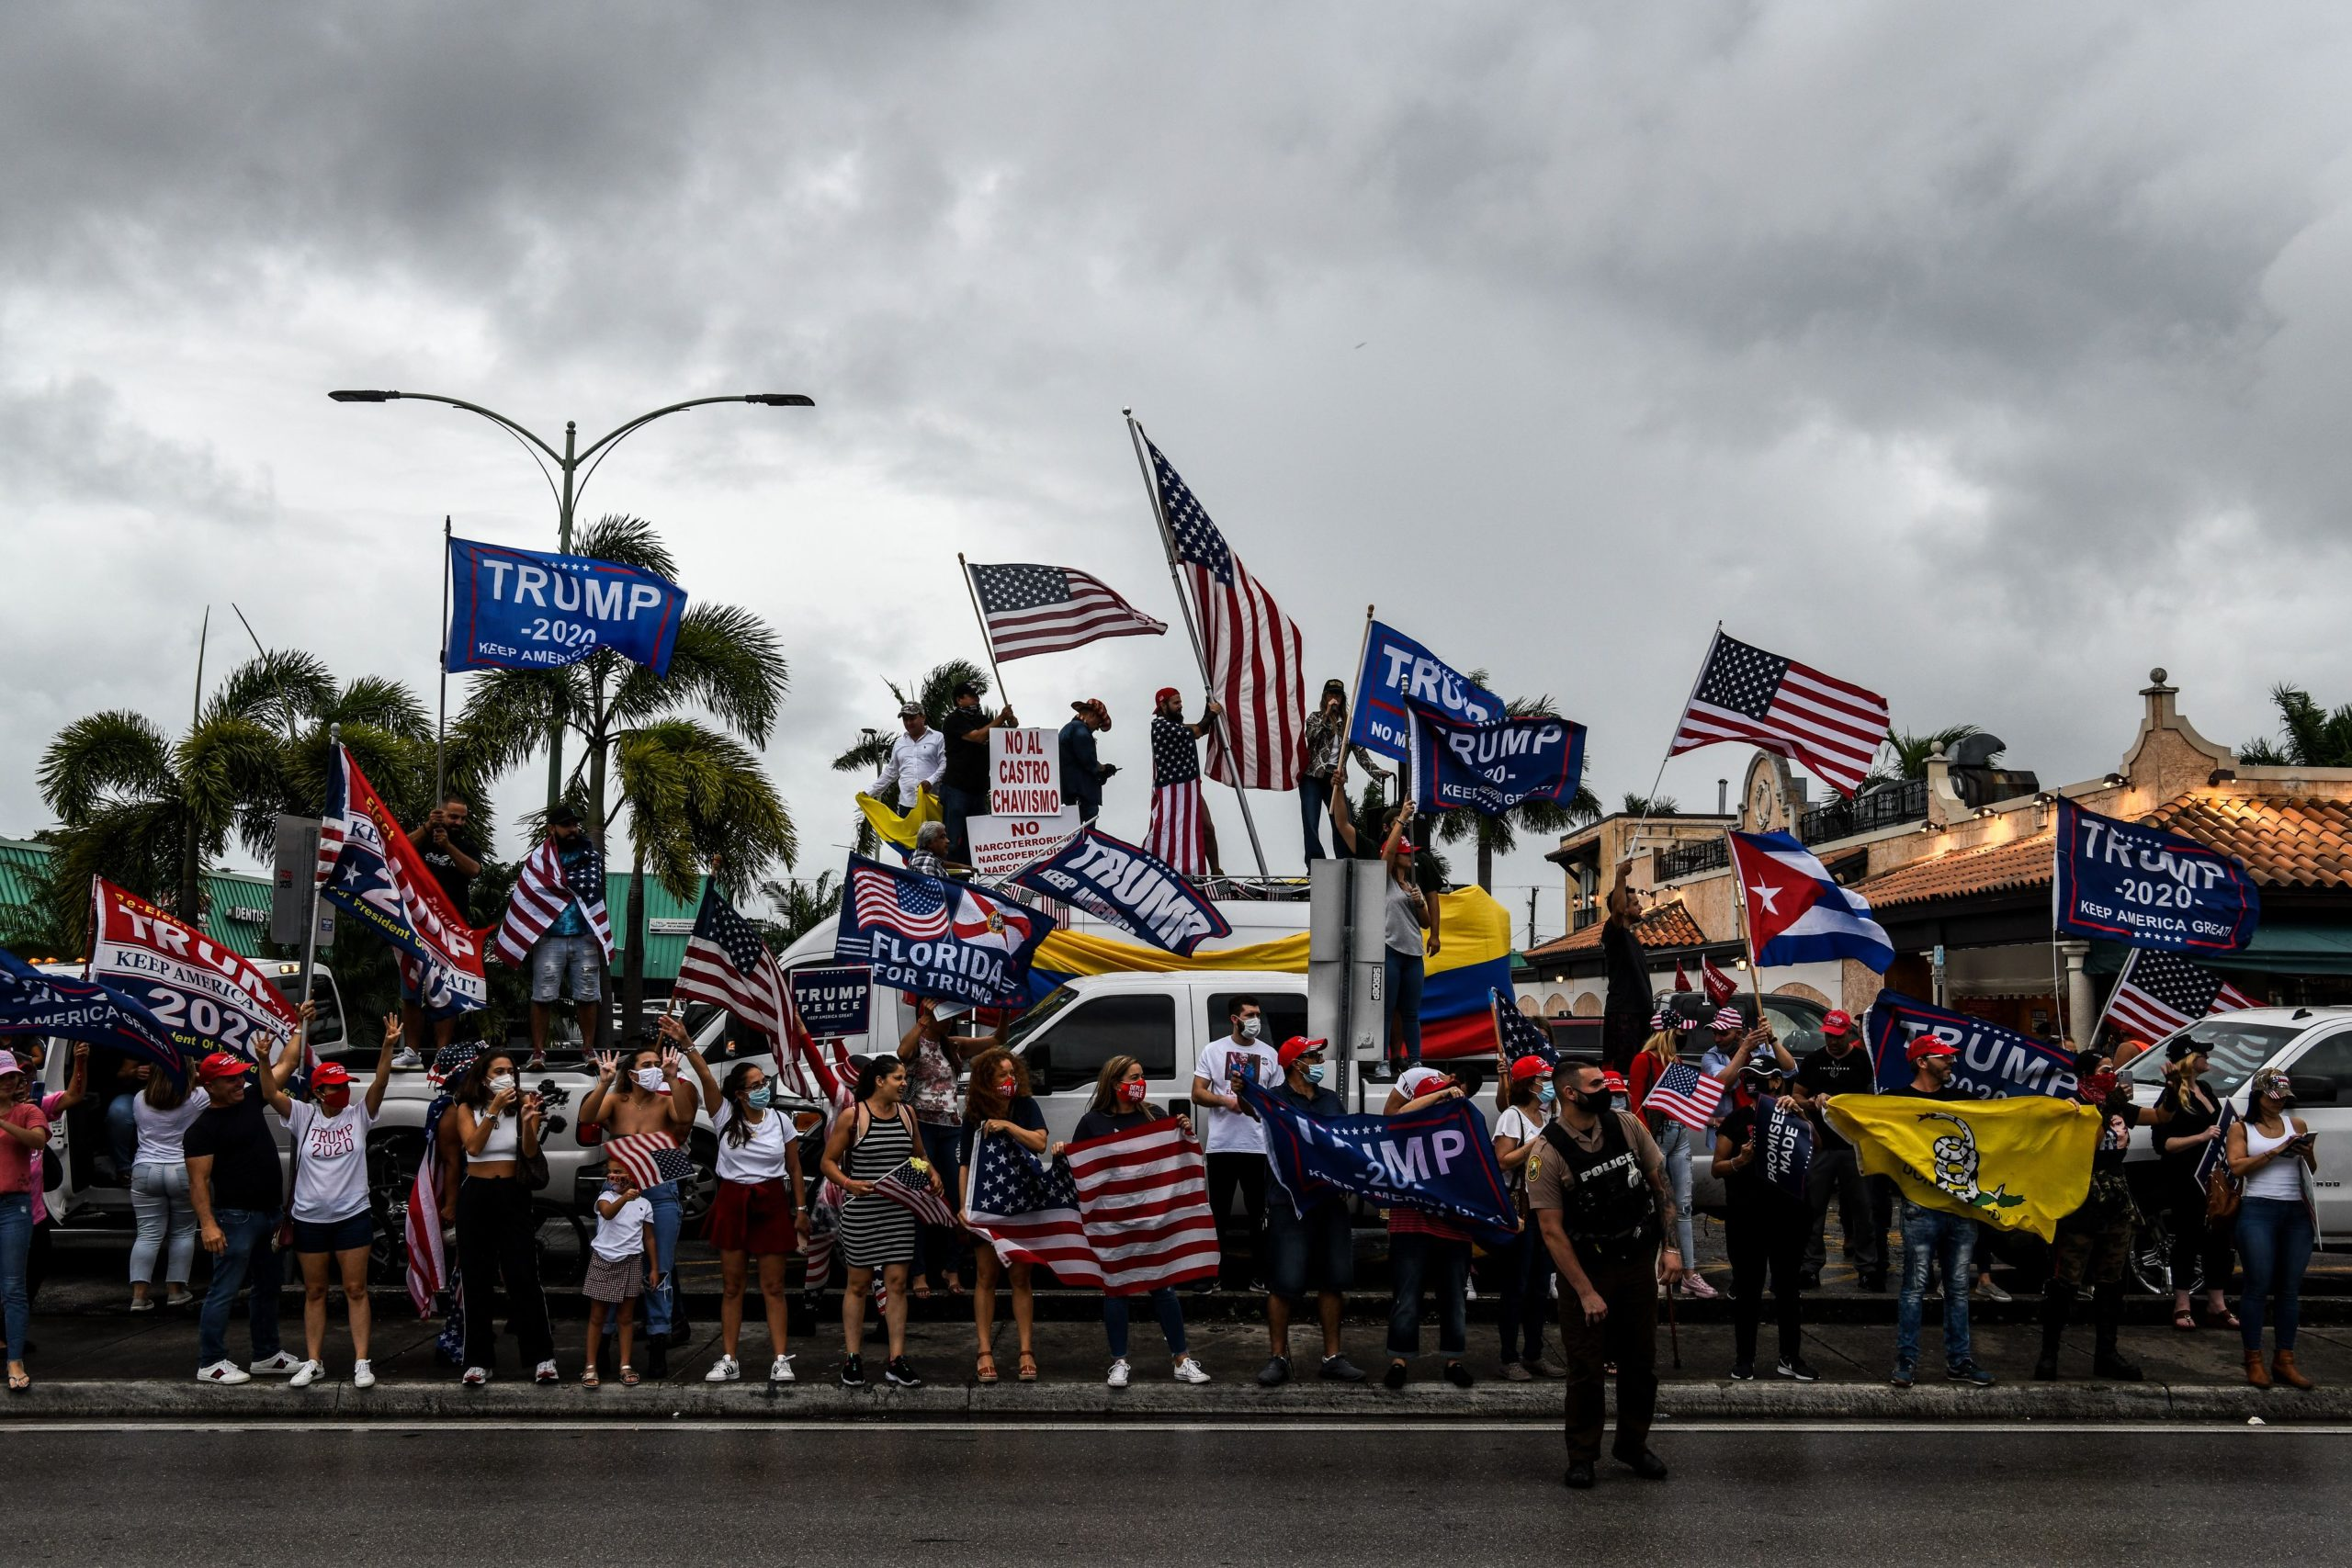 Supporters of US President Donald Trump hold signs and flags during a protest in Miami on November 7, 2020, after Joe Biden was declared the winner of the 2020 presidential election. - Democrat Joe Biden has won the White House, US media said November 7, defeating Donald Trump and ending a presidency that convulsed American politics, shocked the world and left the United States more divided than at any time in decades. (Photo by CHANDAN KHANNA / AFP) (Photo by CHANDAN KHANNA/AFP via Getty Images)